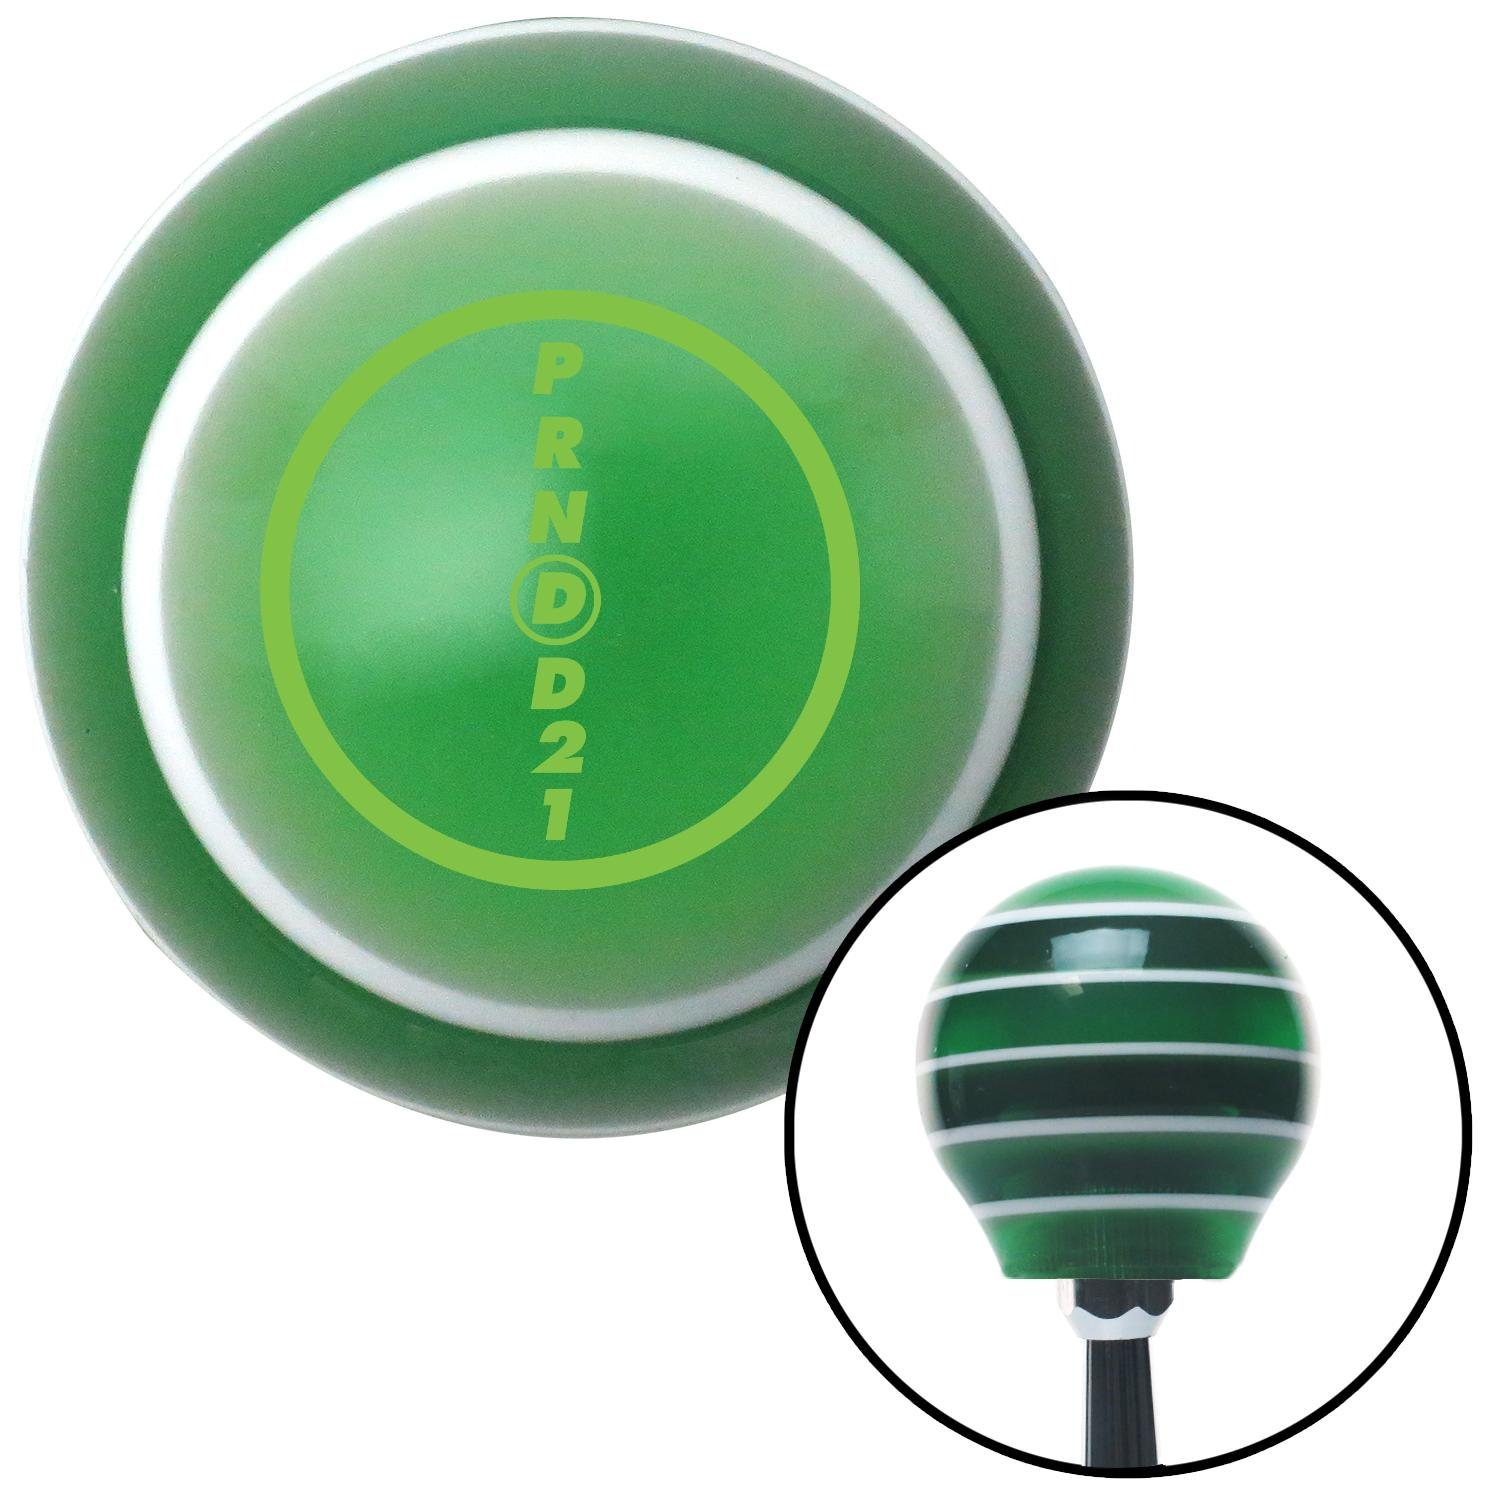 American Shifter 126563 Green Stripe Shift Knob with M16 x 1.5 Insert Green 3 Speed Overdrive